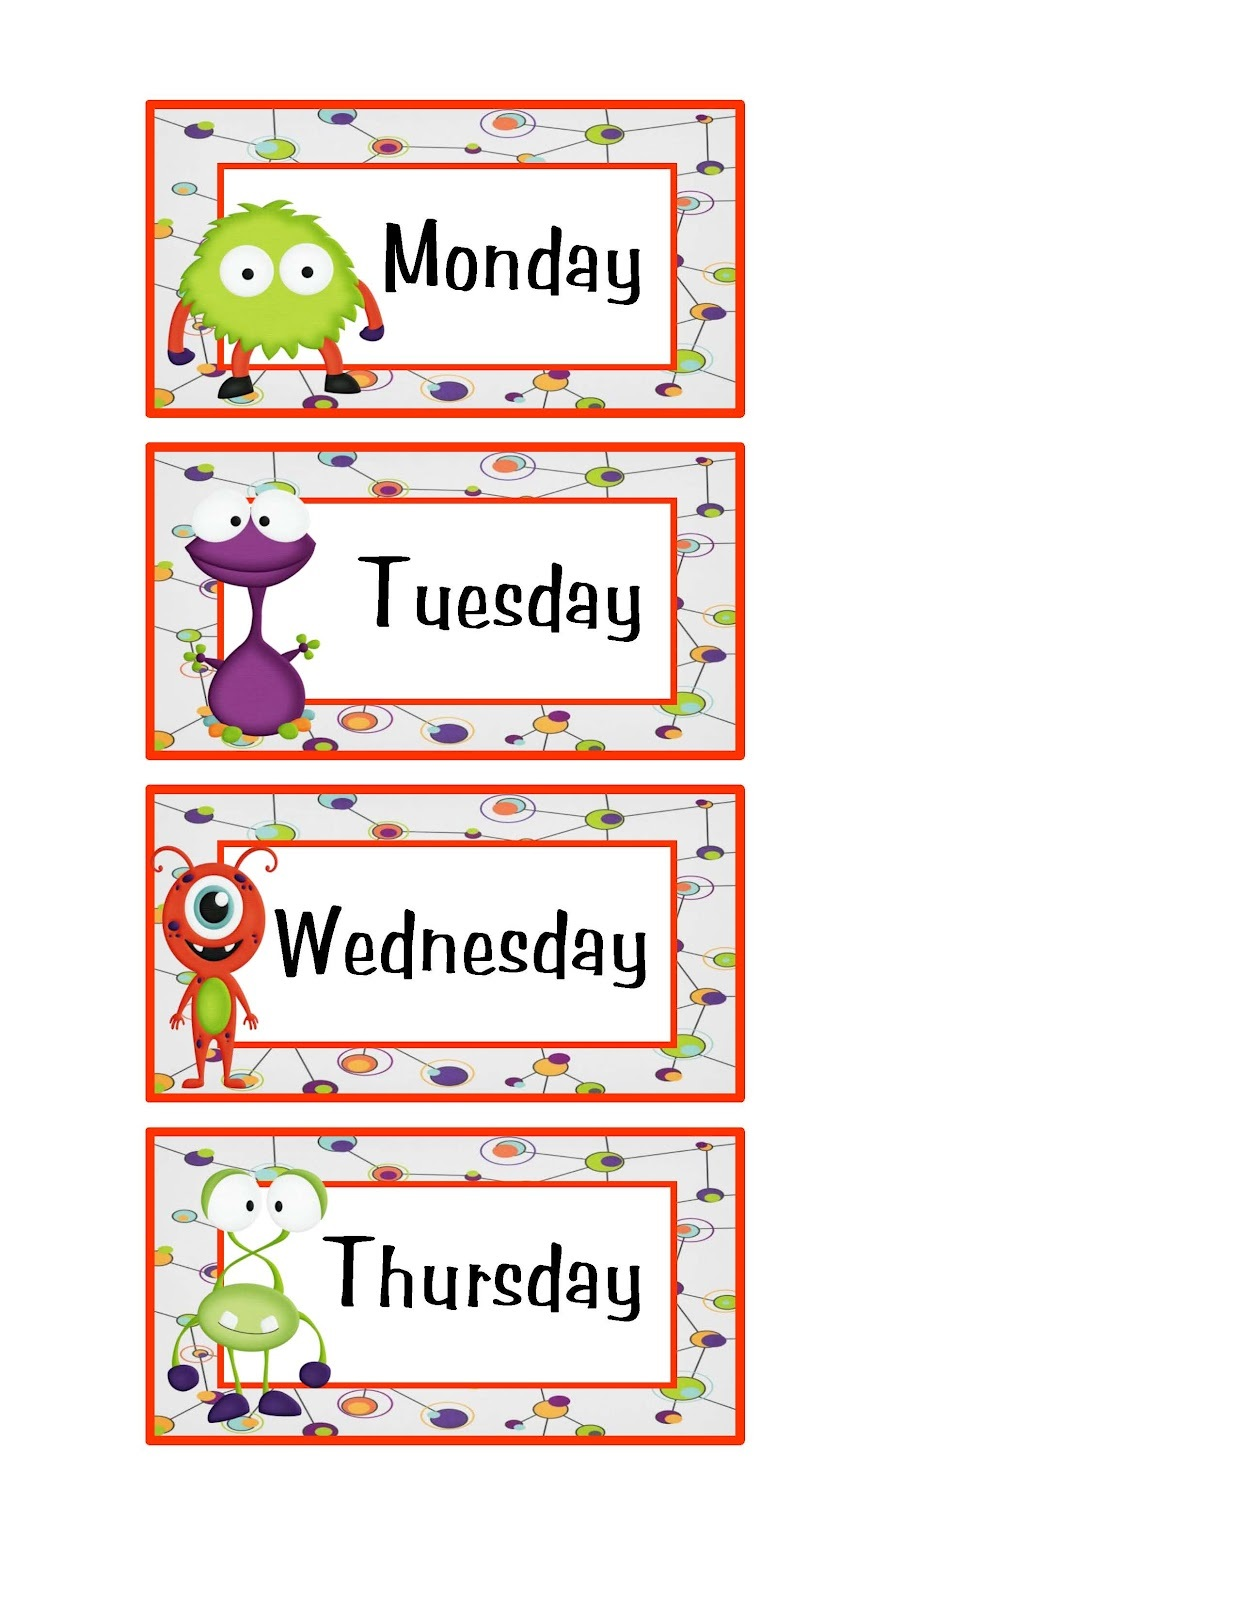 Worksheets For Days Of The Week Arranging Activity Shelter